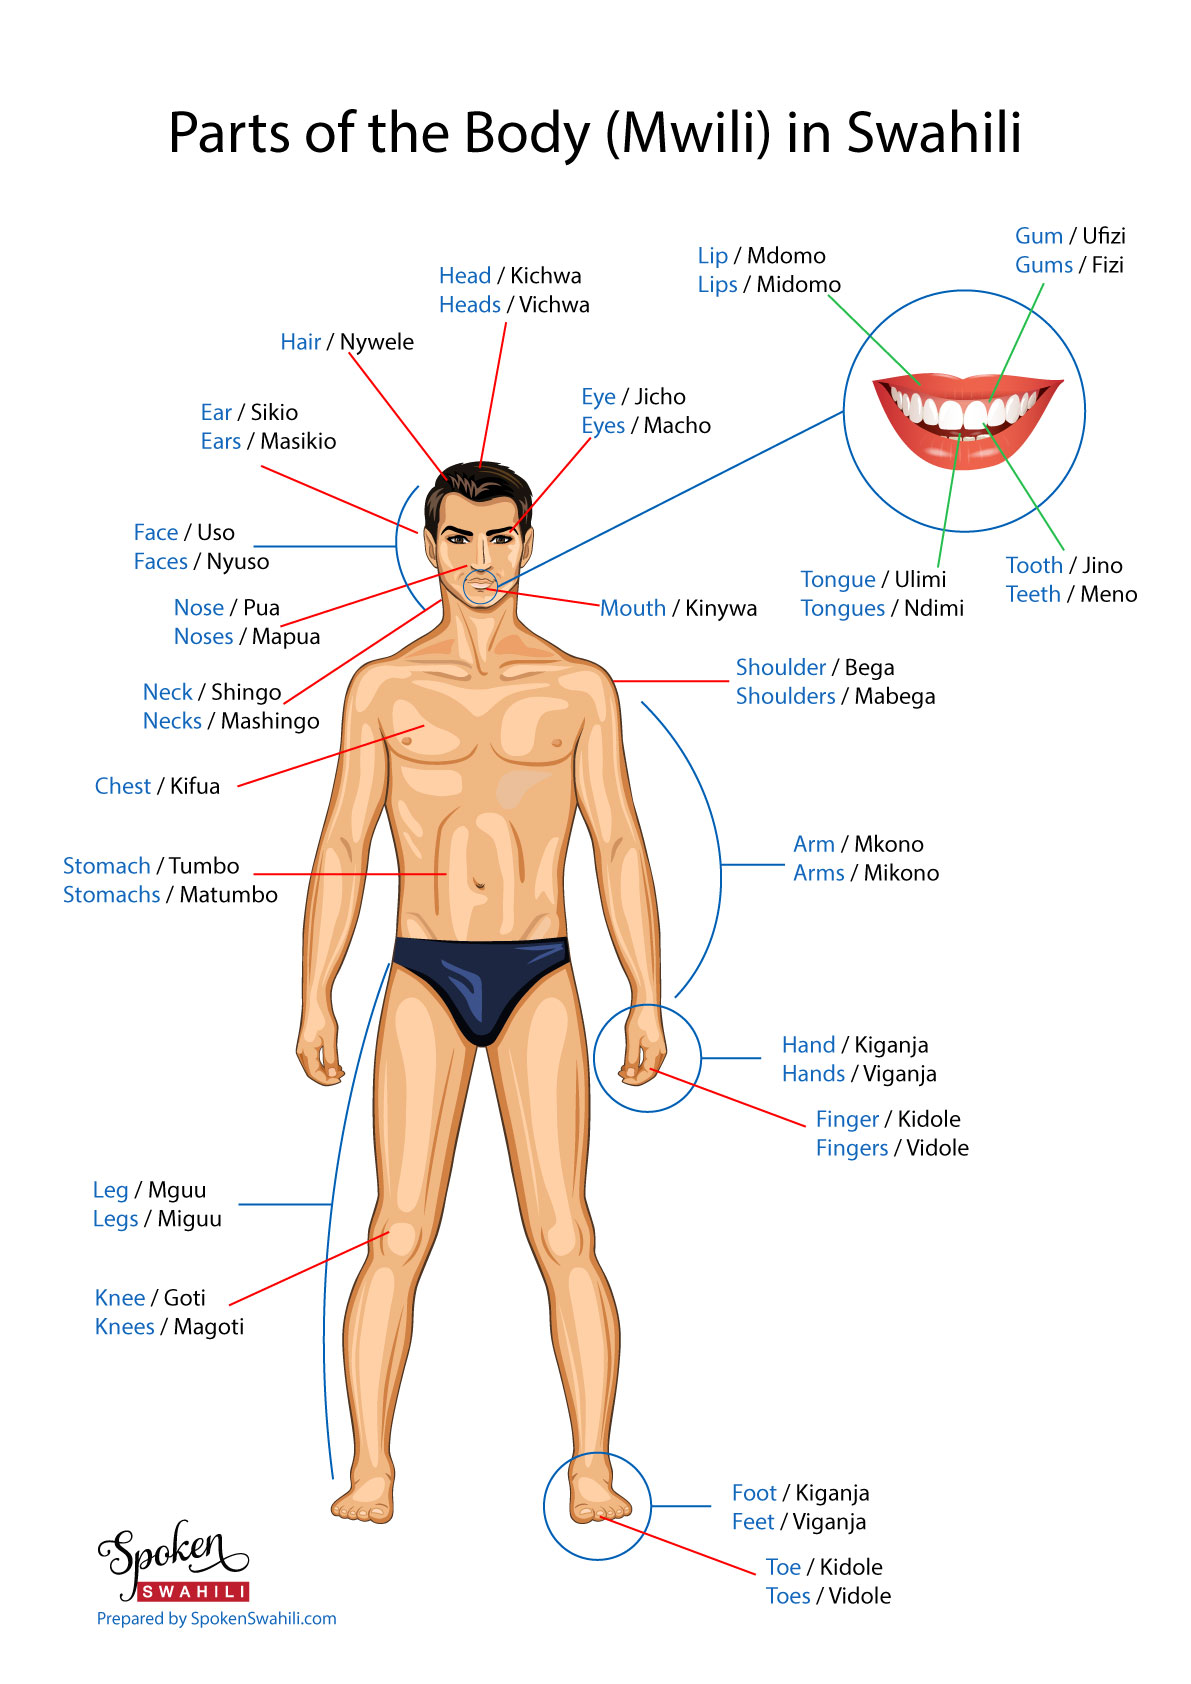 Parts Of The Body In Swahili